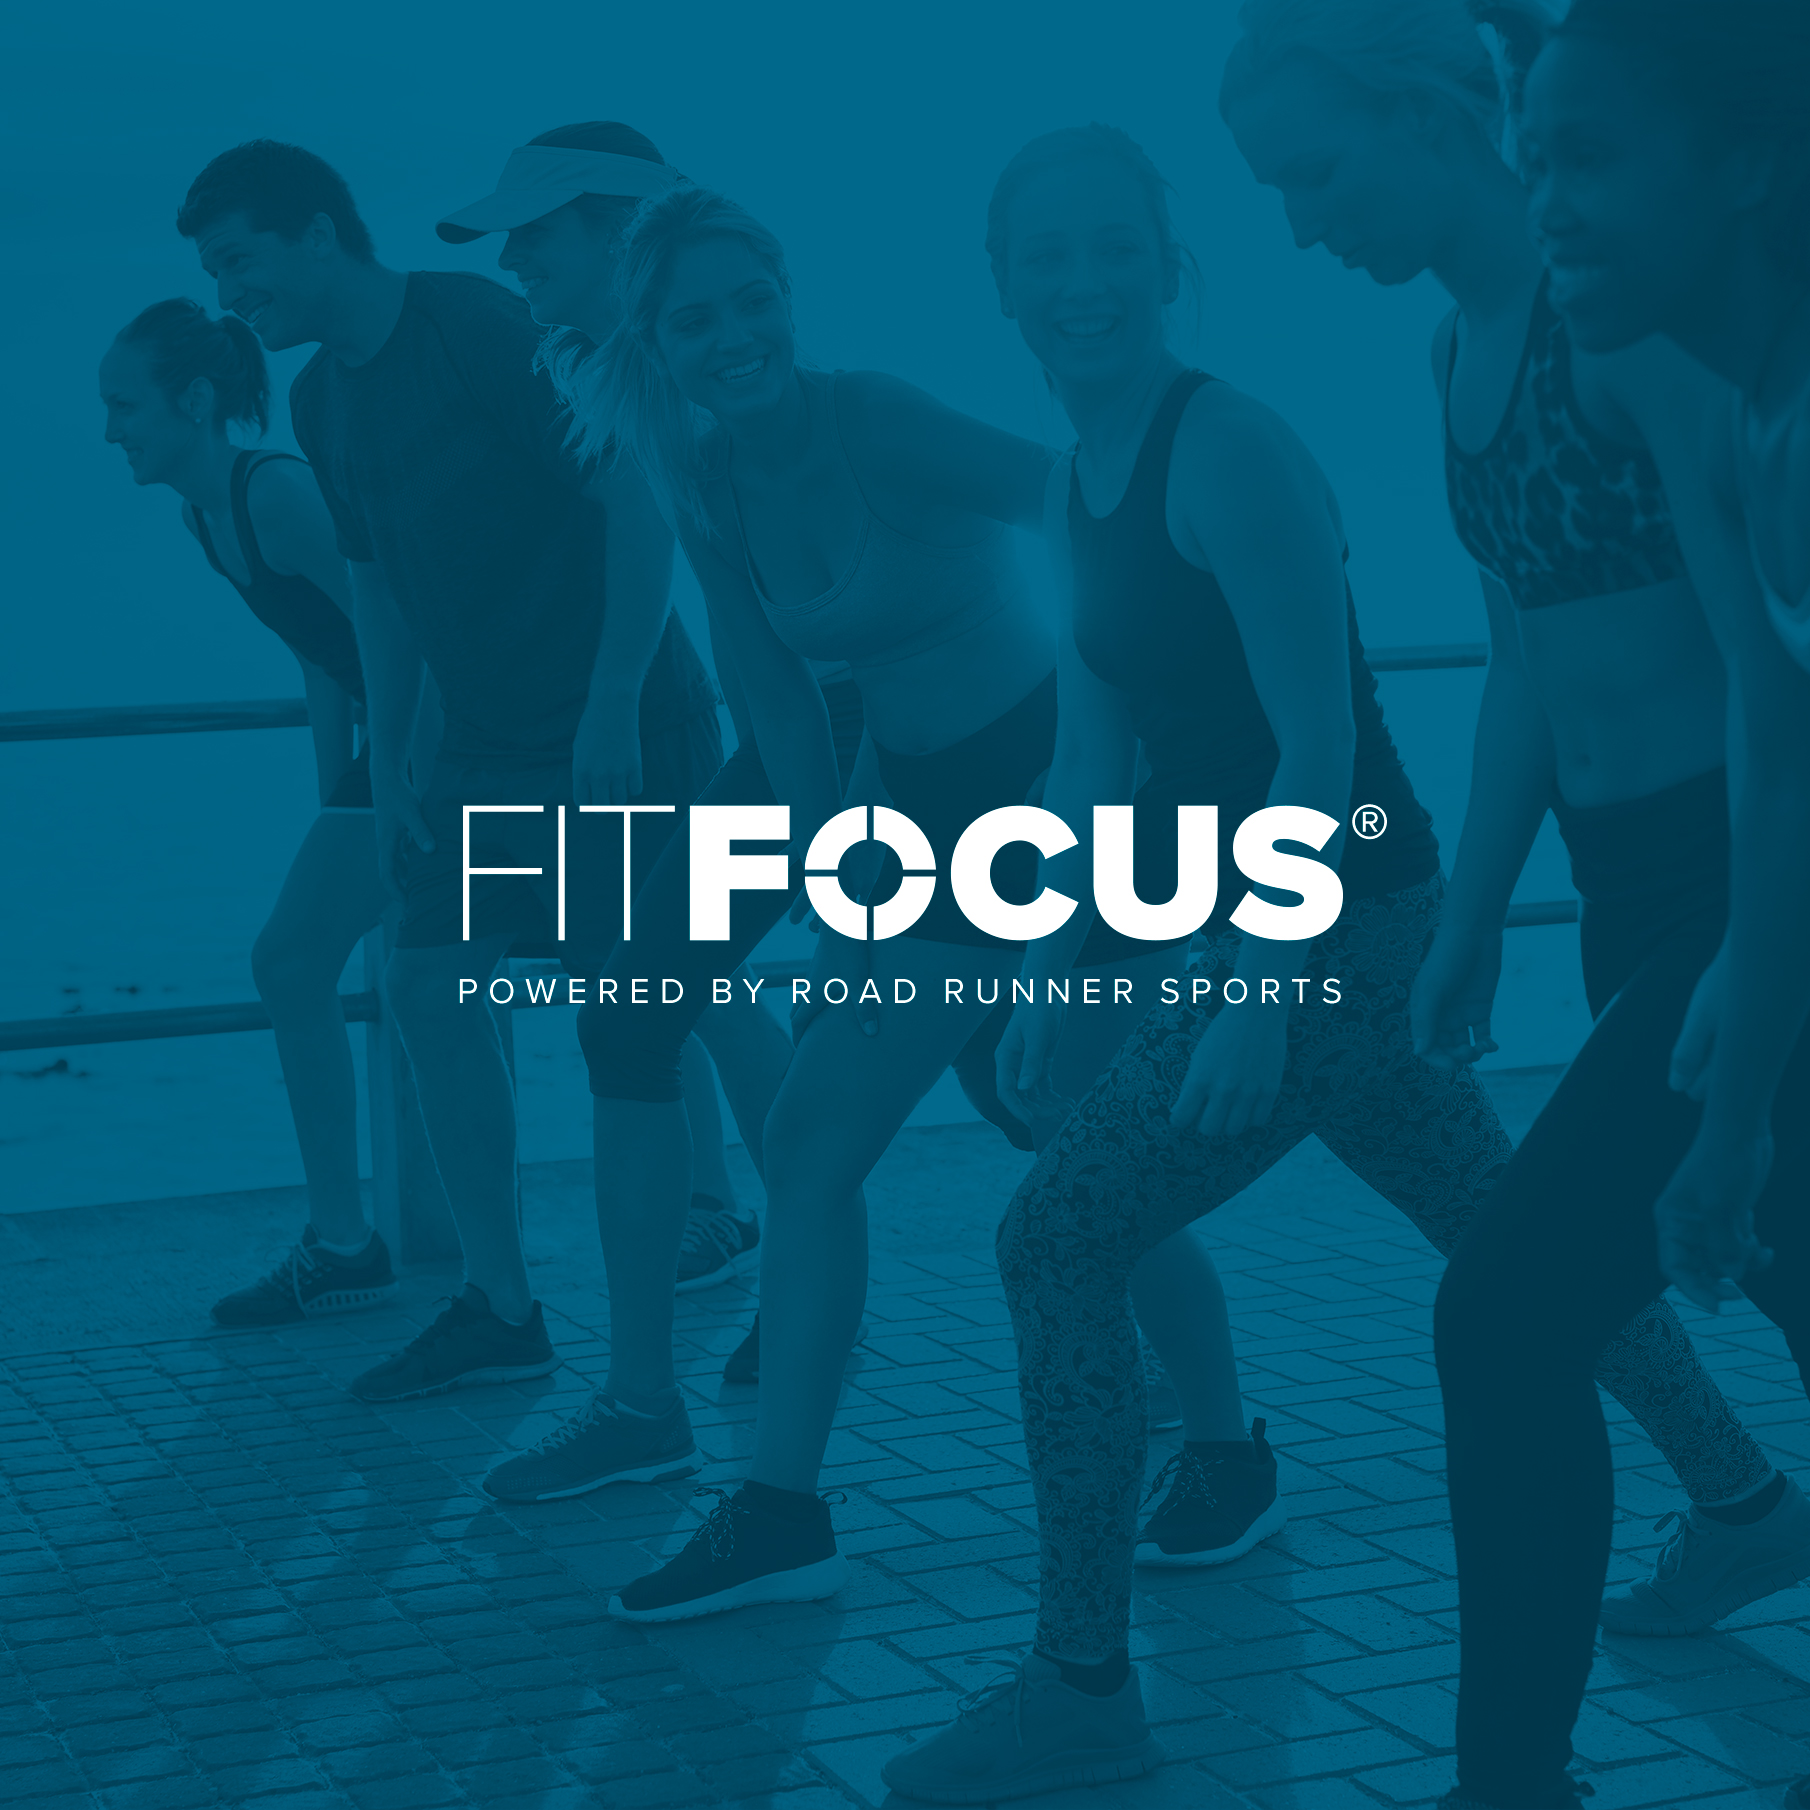 FitFocus by Road Runner Sports  CREATIVE DIRECTION | STRATEGY | UX DESIGN